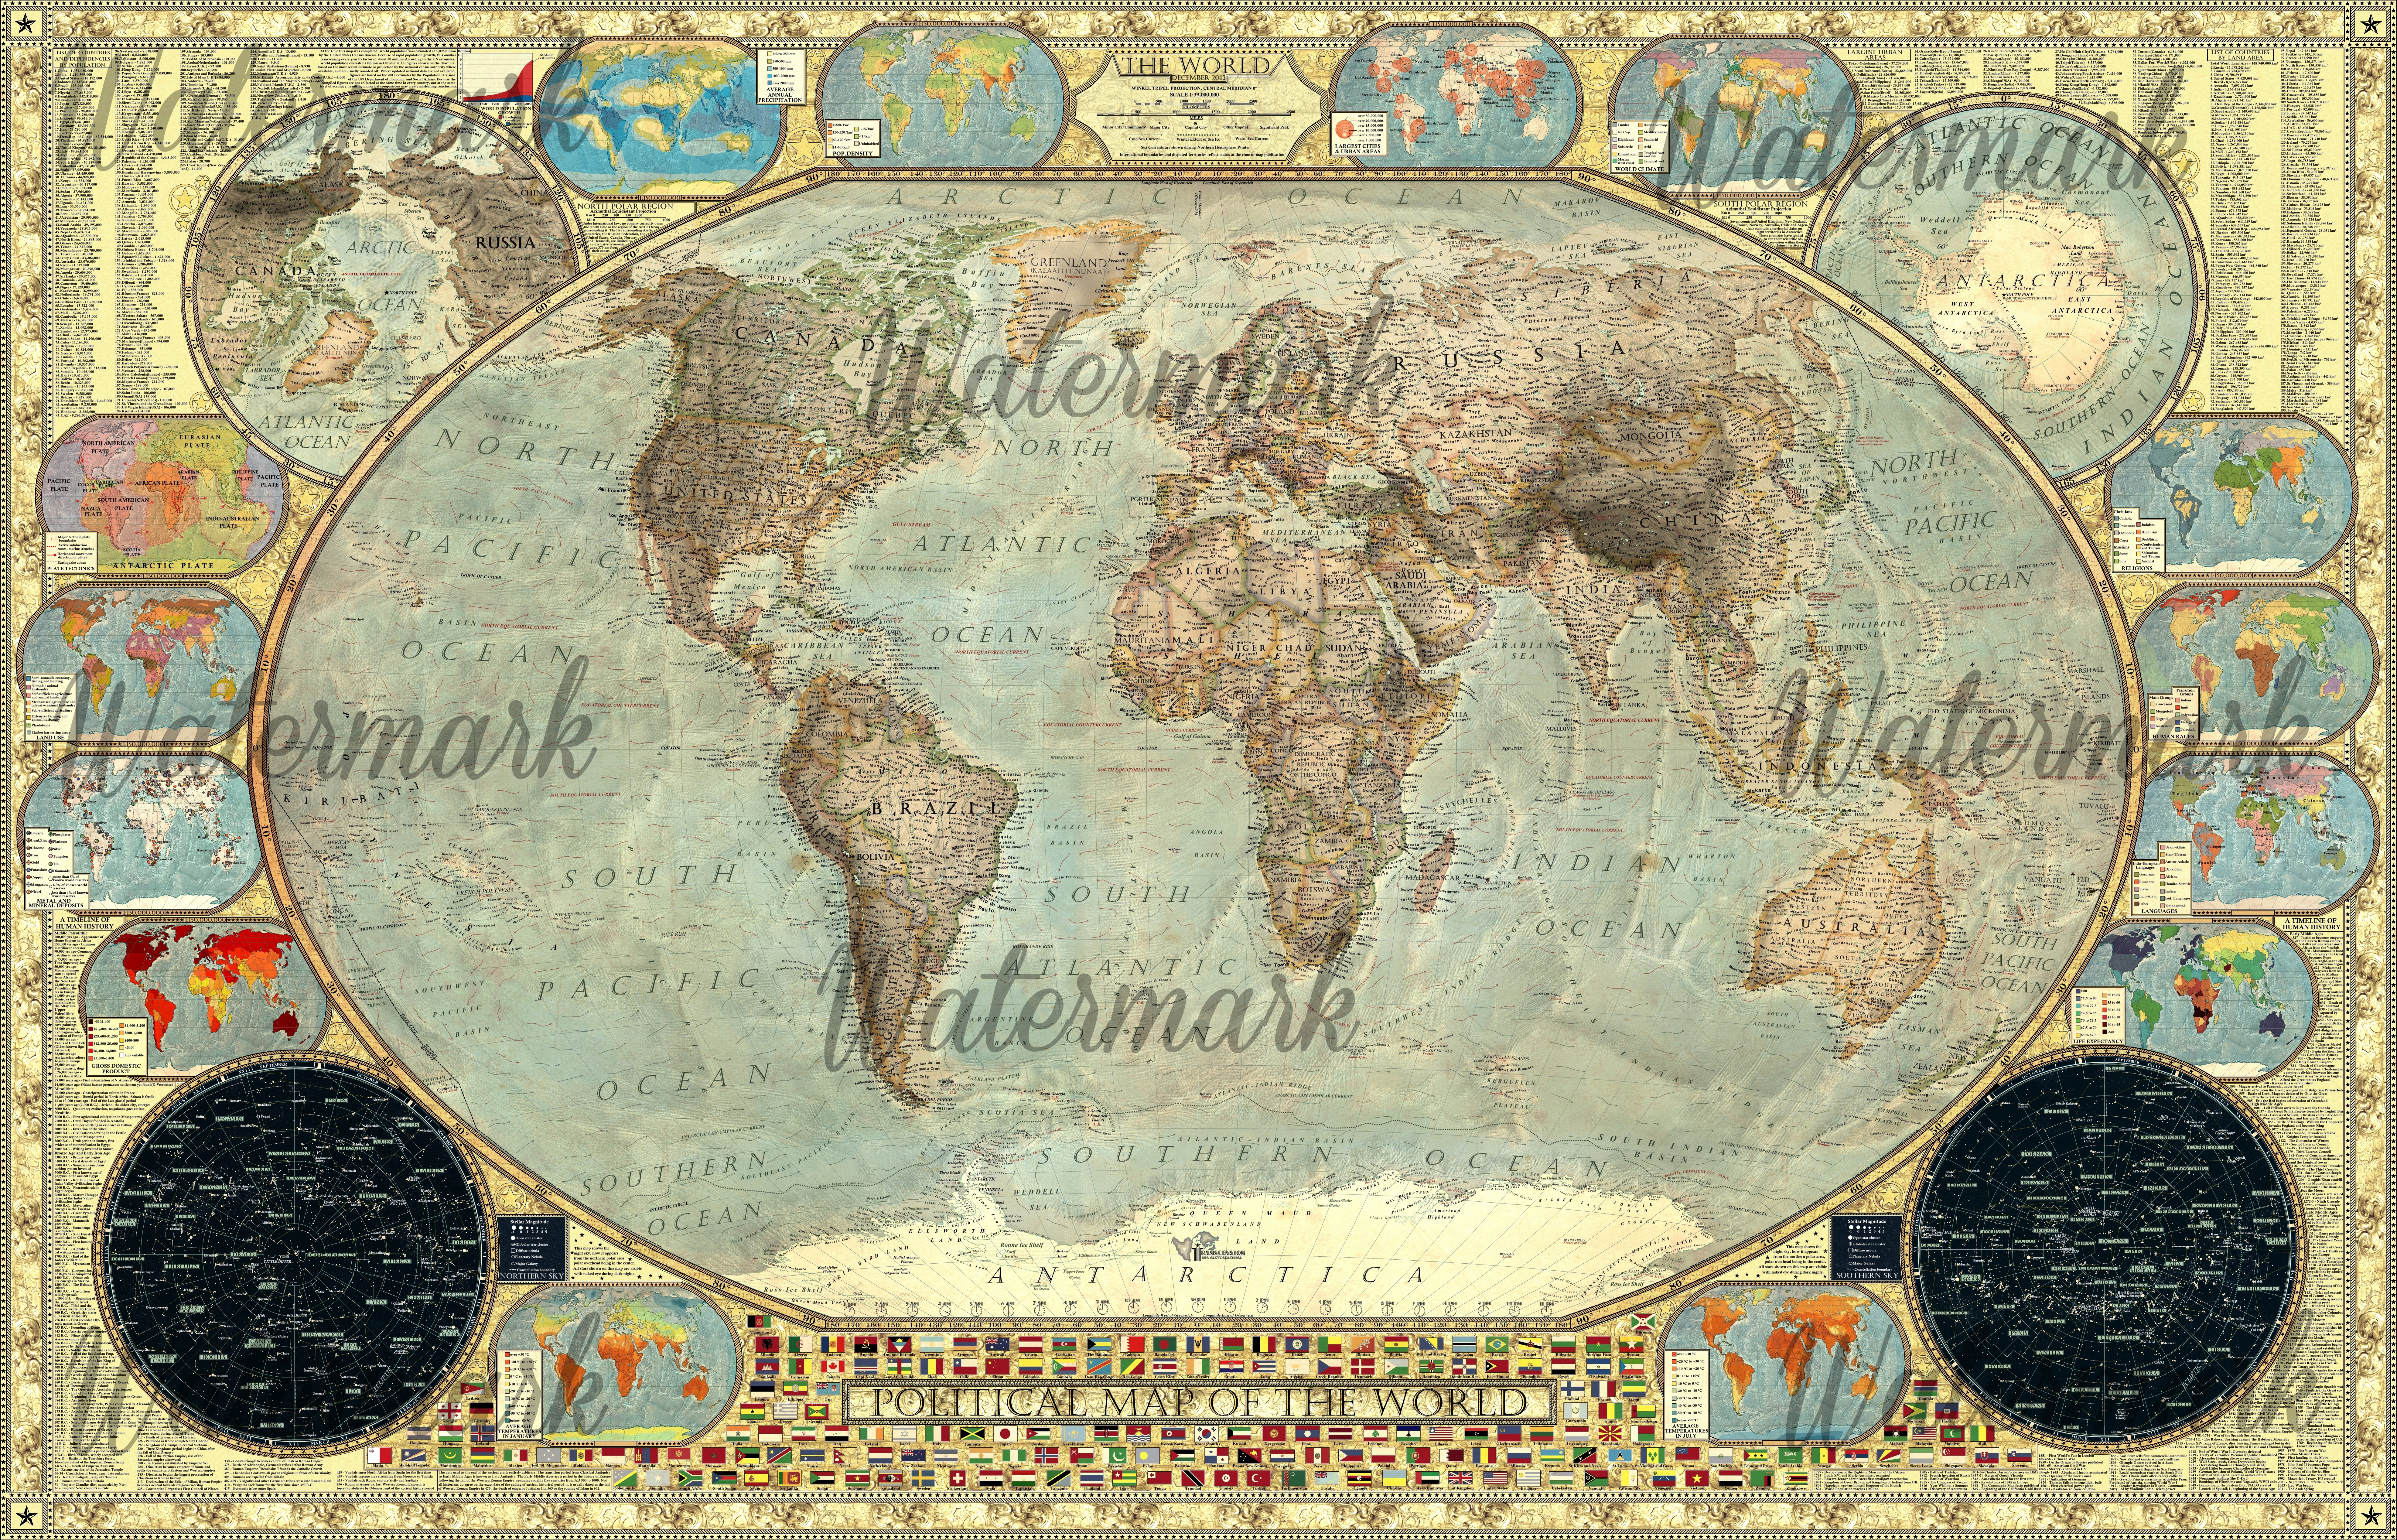 Political Map of the World - Imperial Decorative